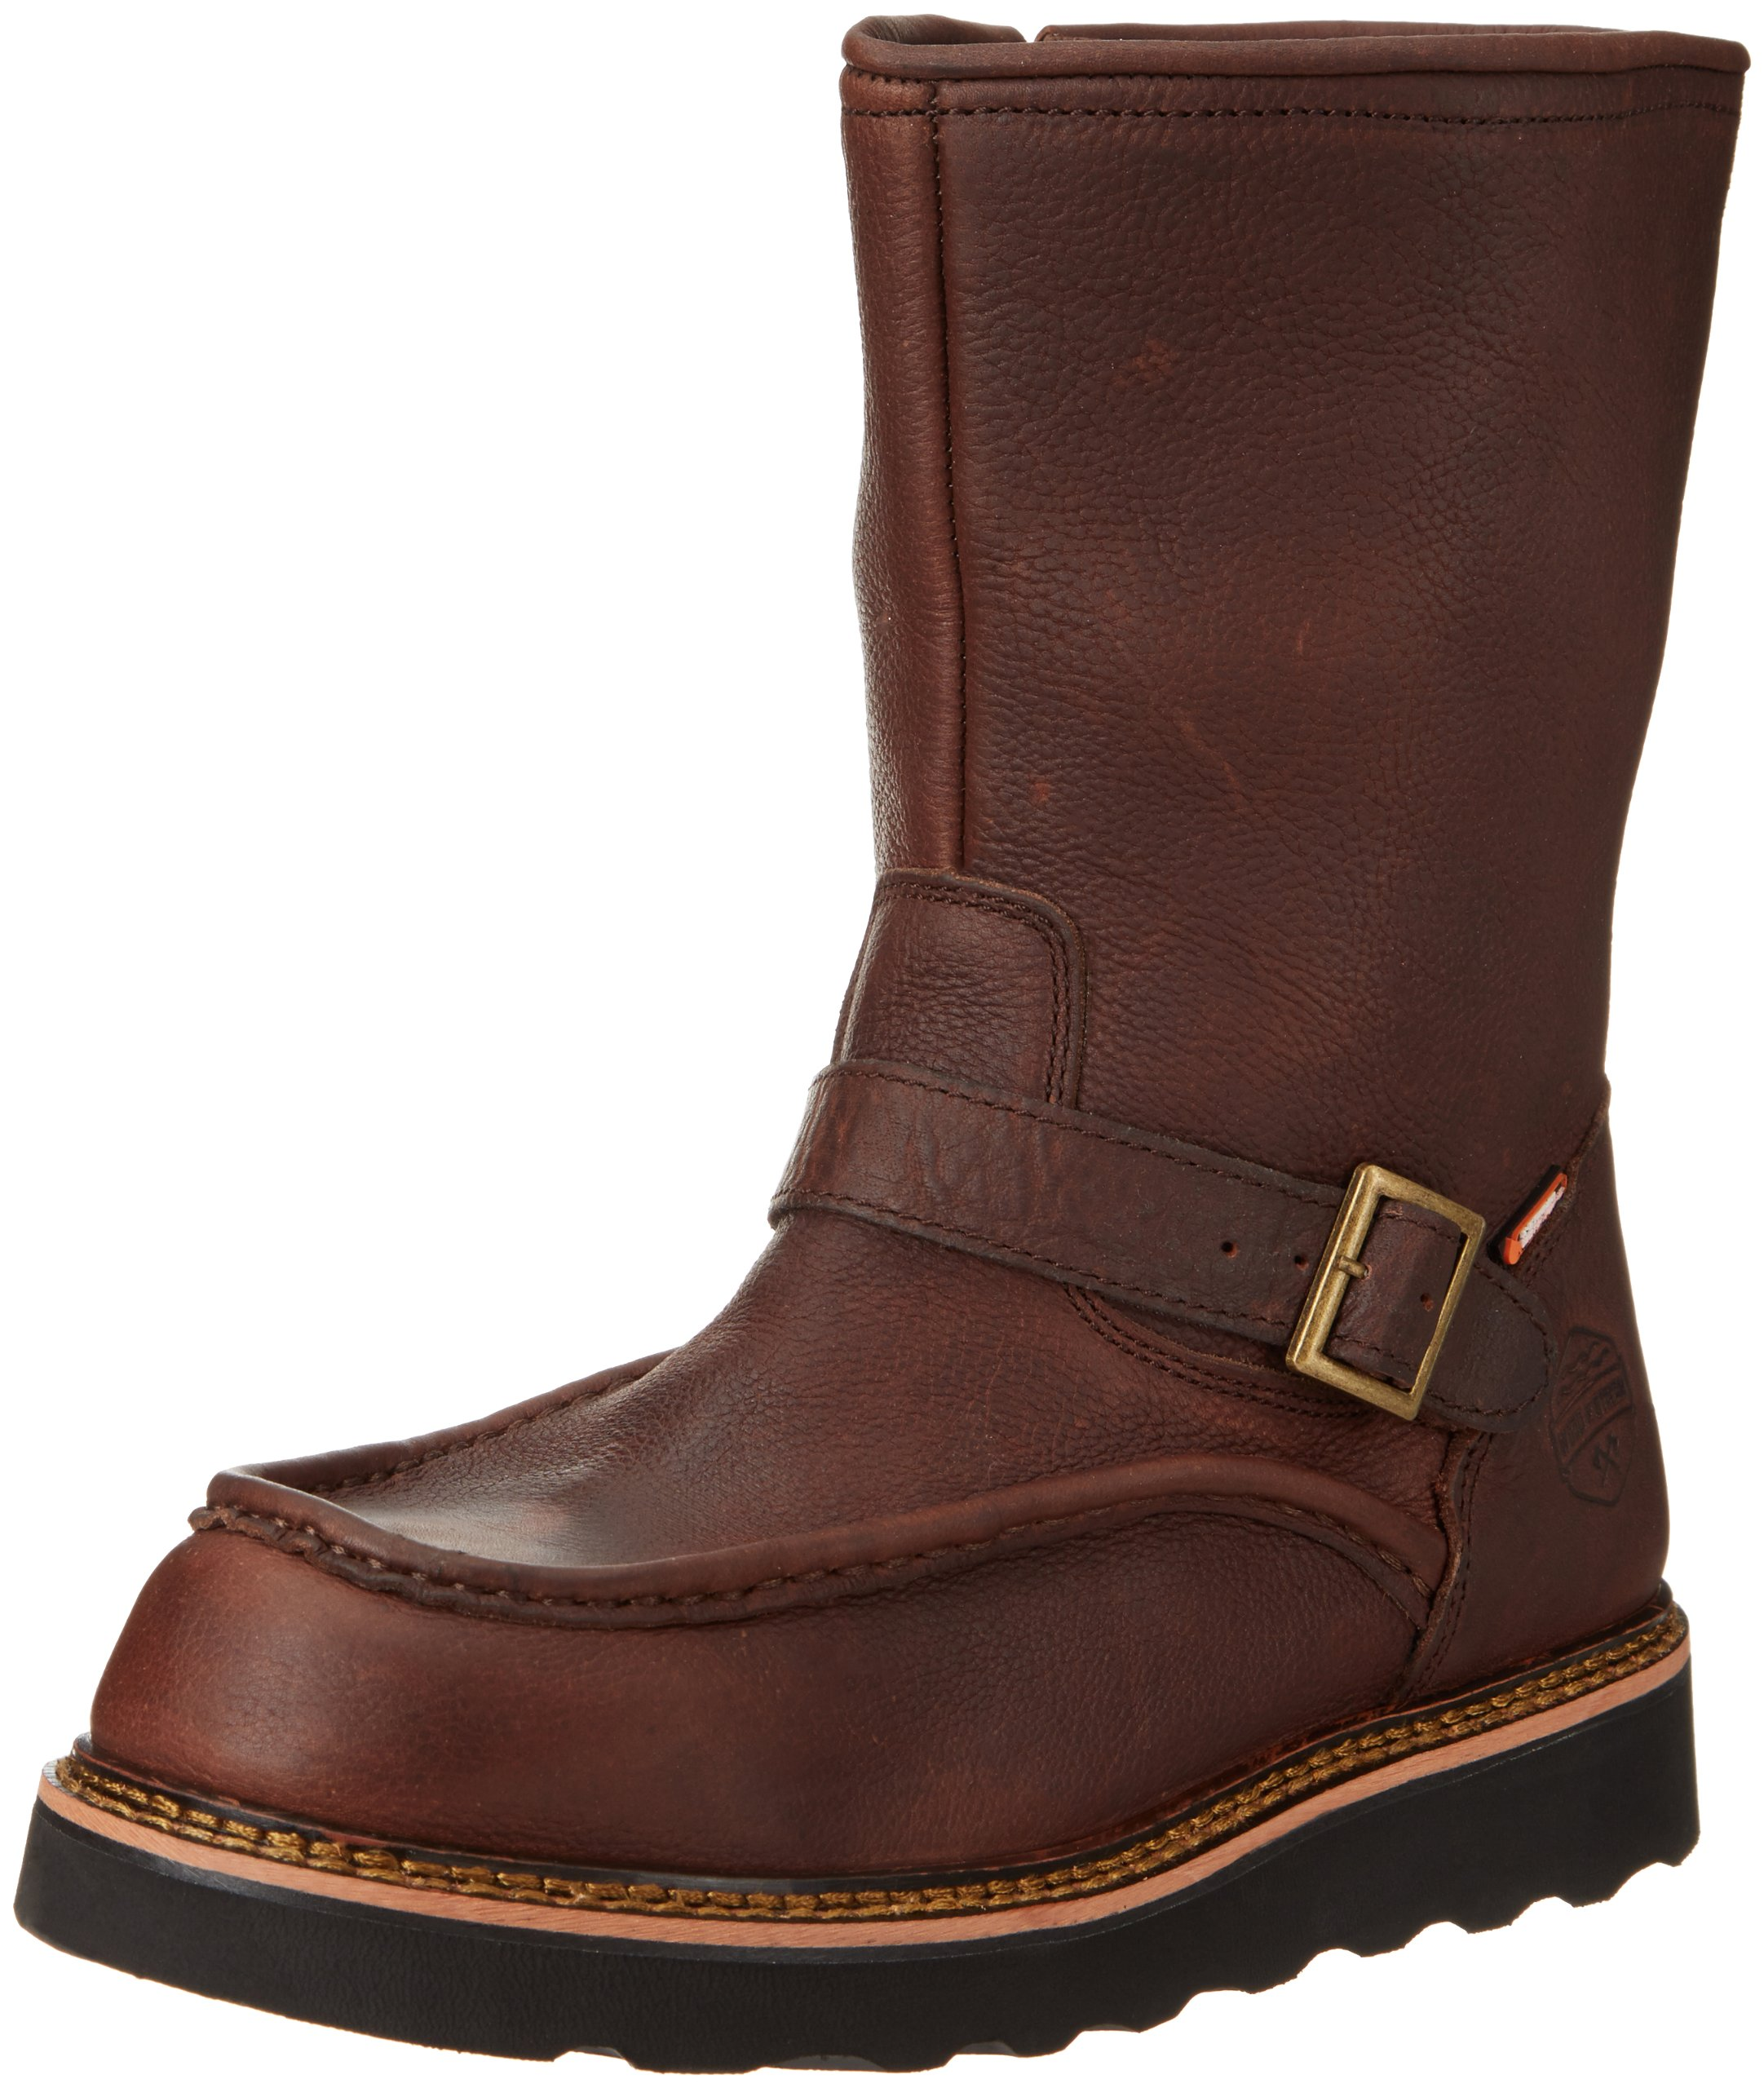 WOOD N' STREAM Men's 6005 Flyway Boot,Red Oak Brown,8 M US by WOOD N' STREAM